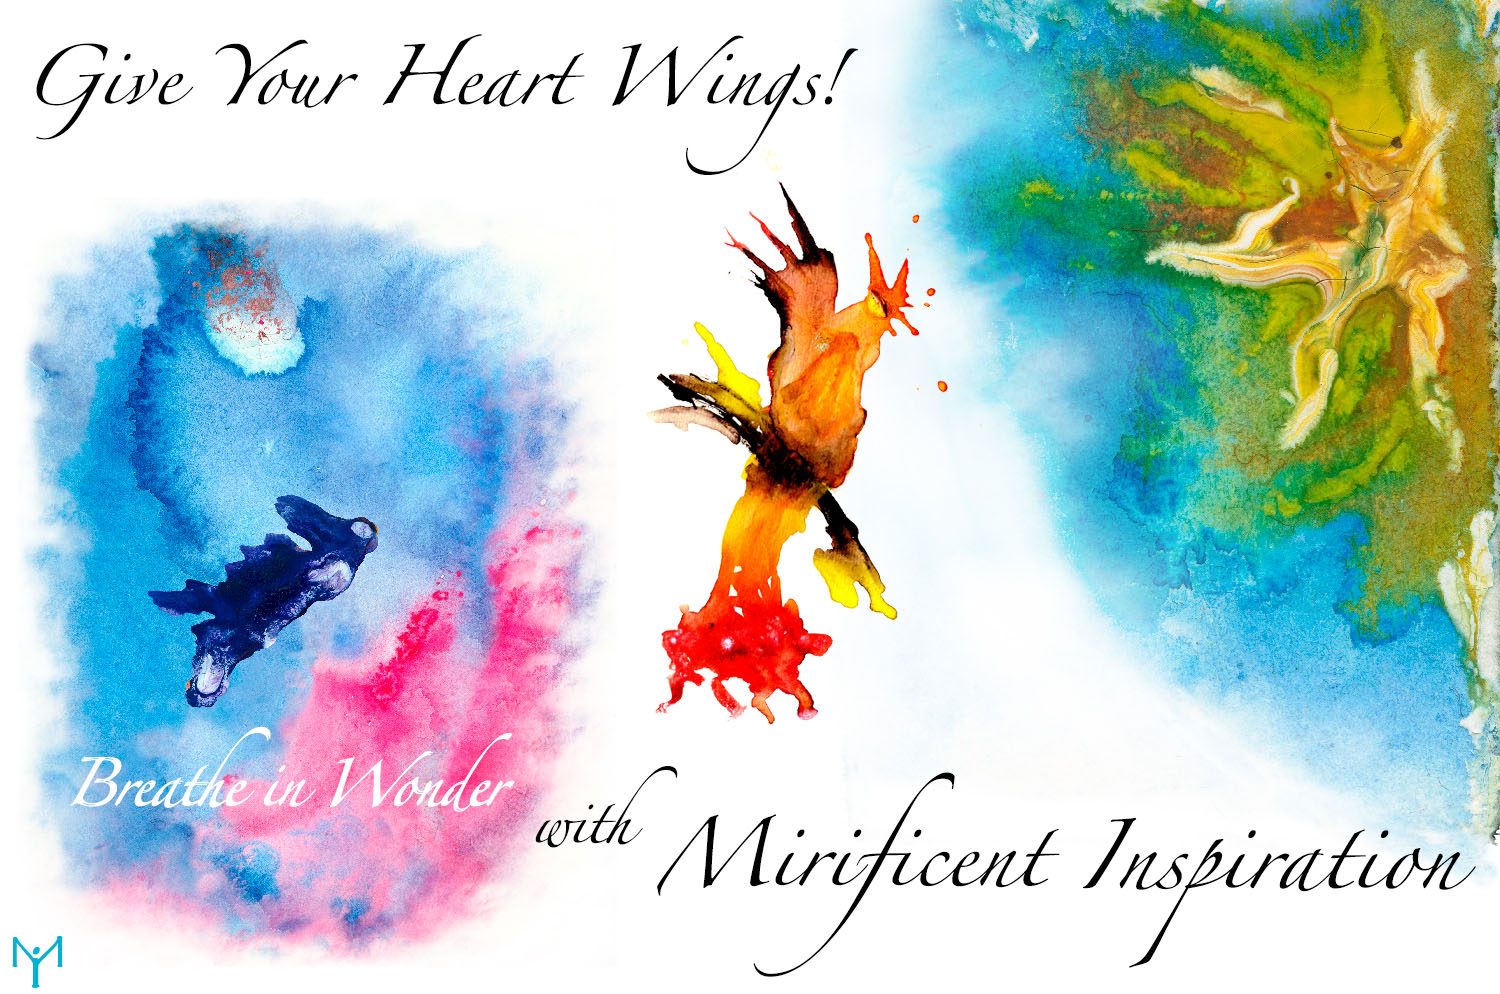 Coming Soon: Mirificent Inspiration!